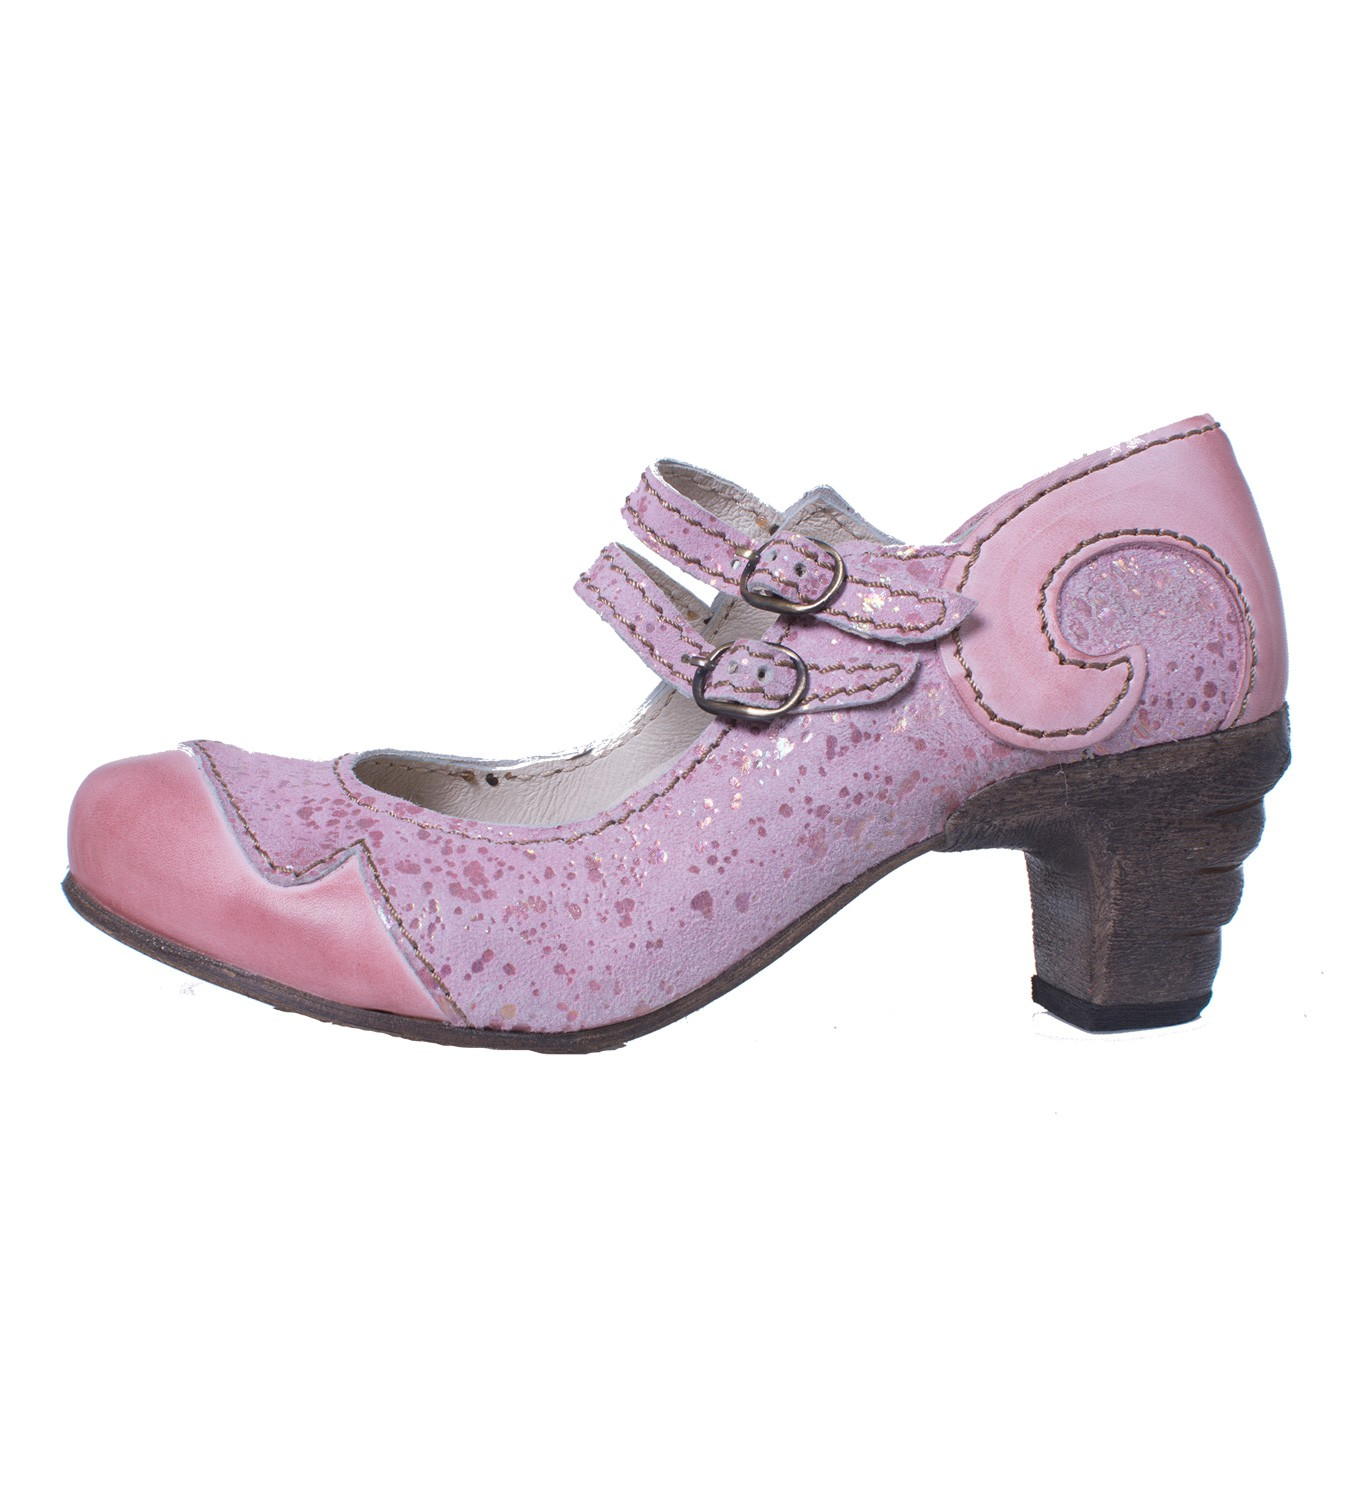 094e5d7f30a25 Rovers 51001 Crust Costa Viola Märchenhafte Sommer Pumps in Pink